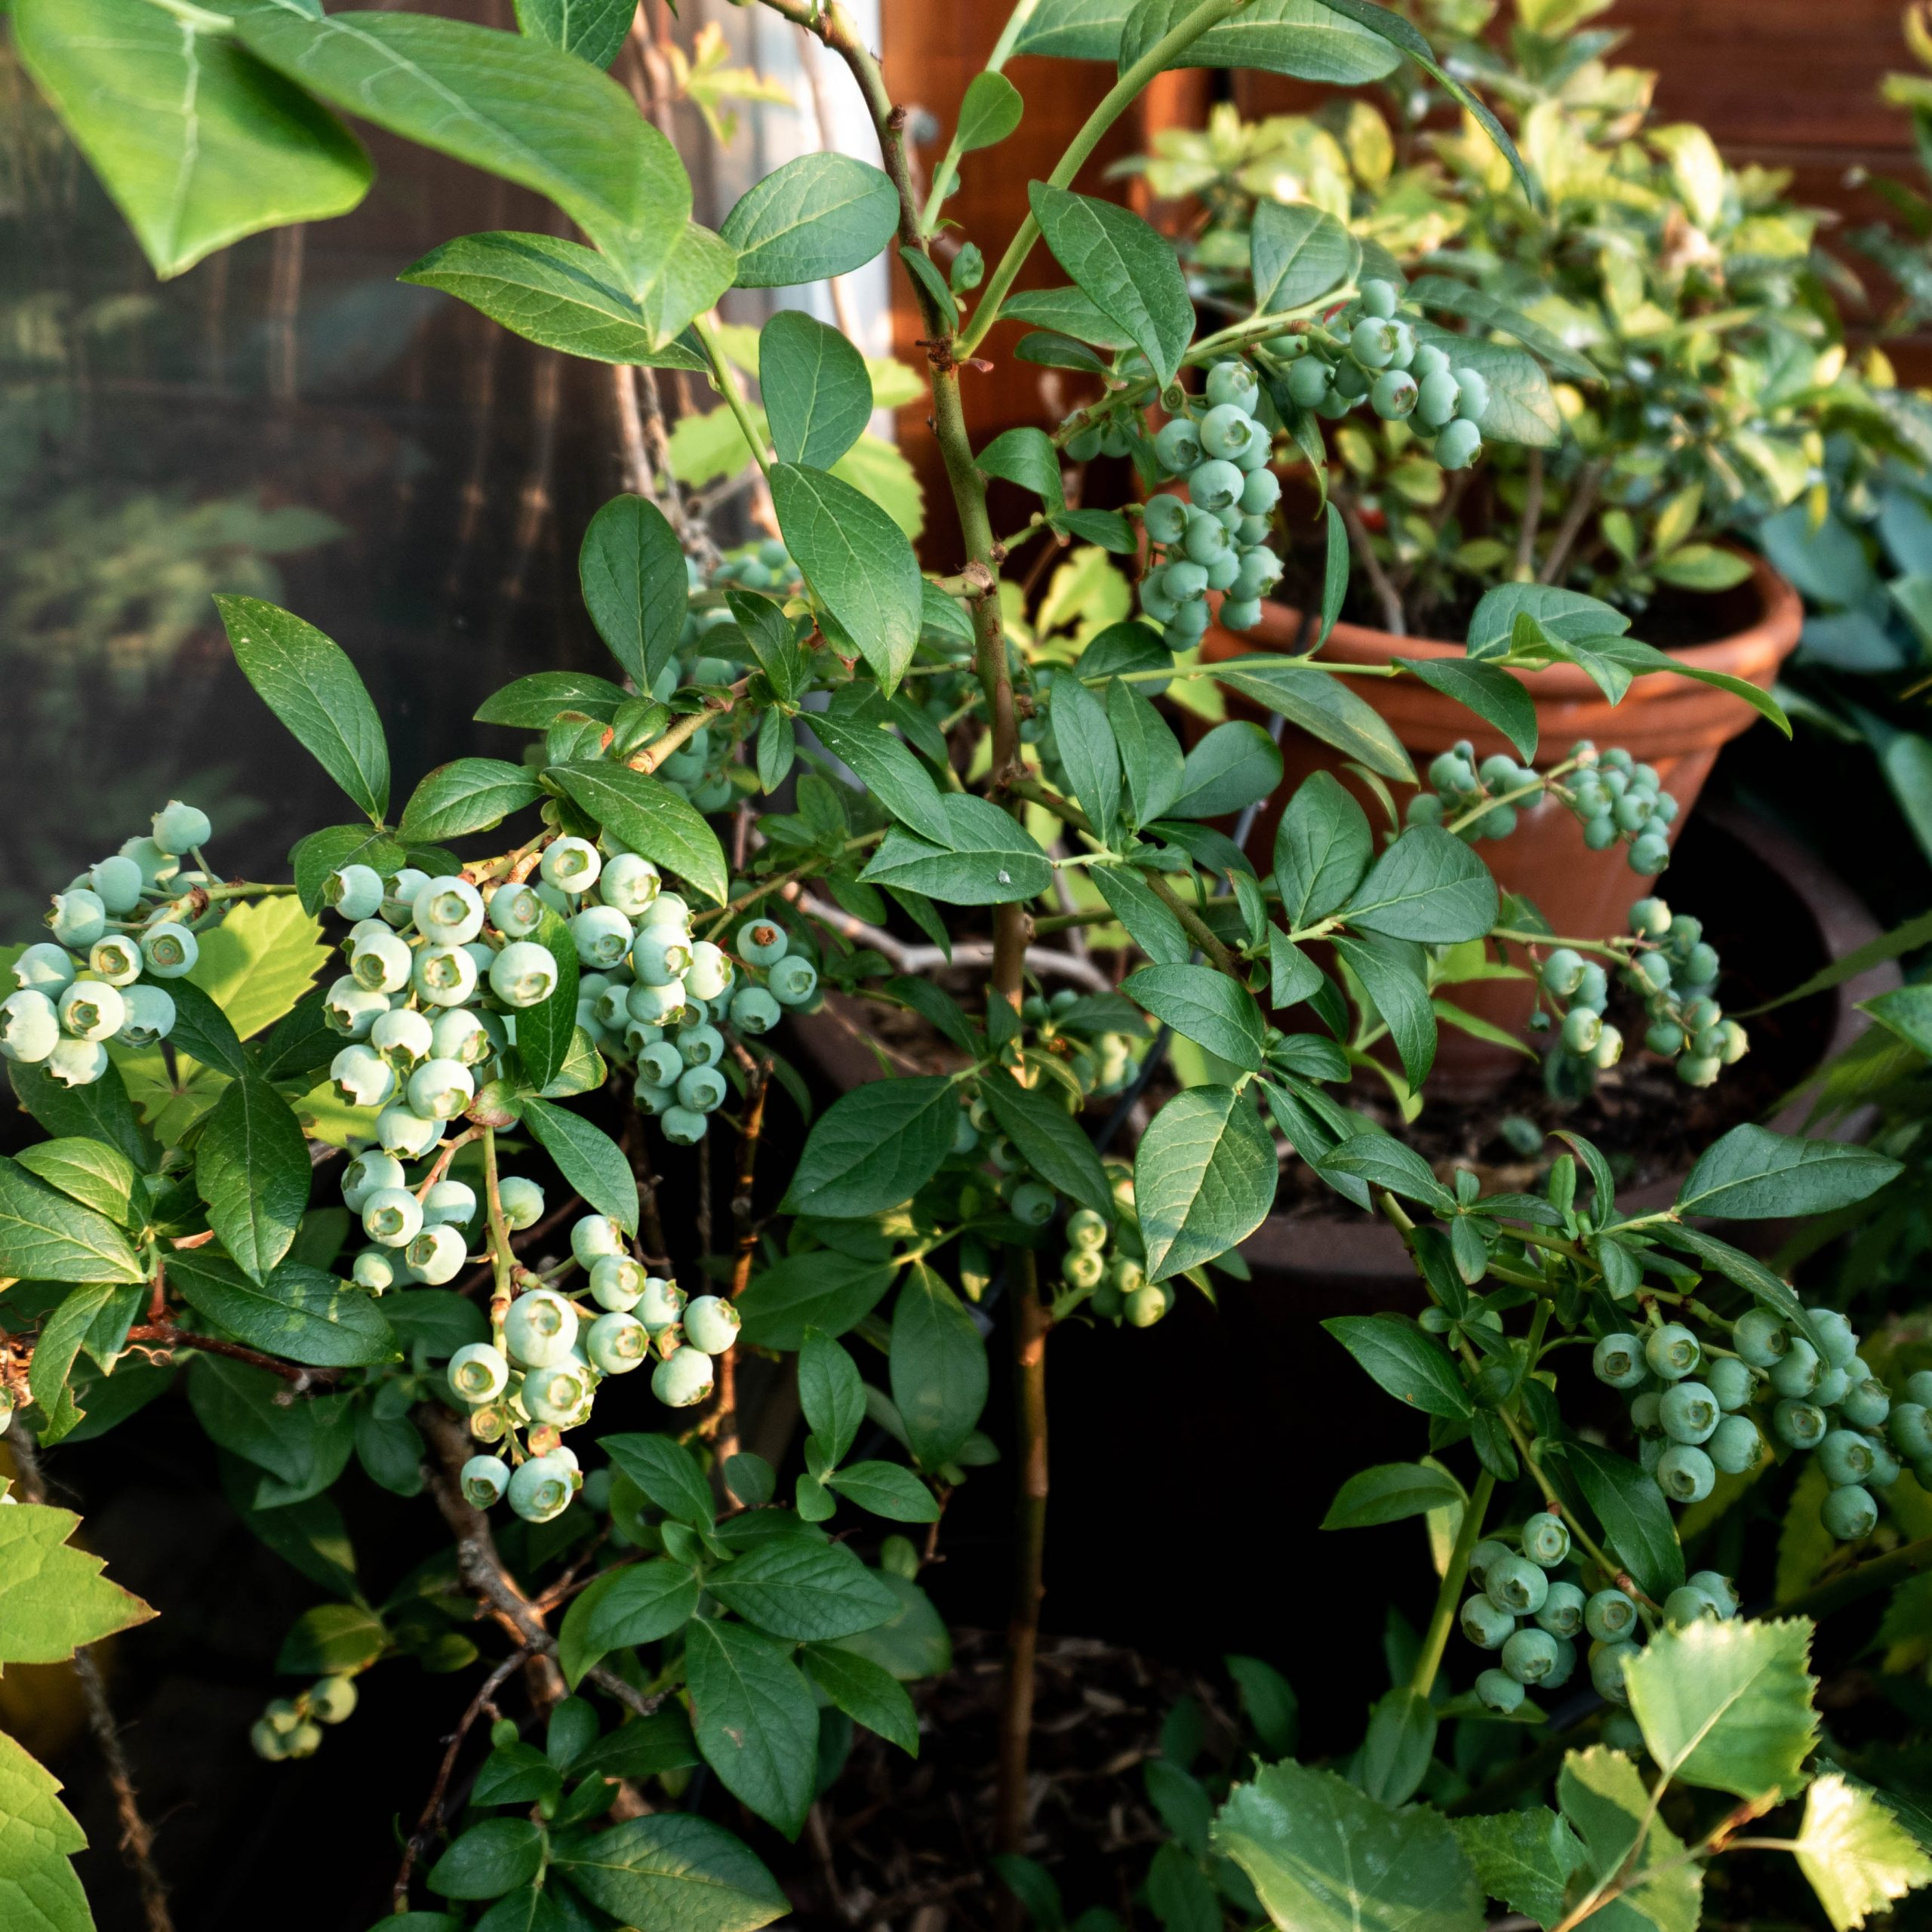 pruned blueberry bush with unripe berries